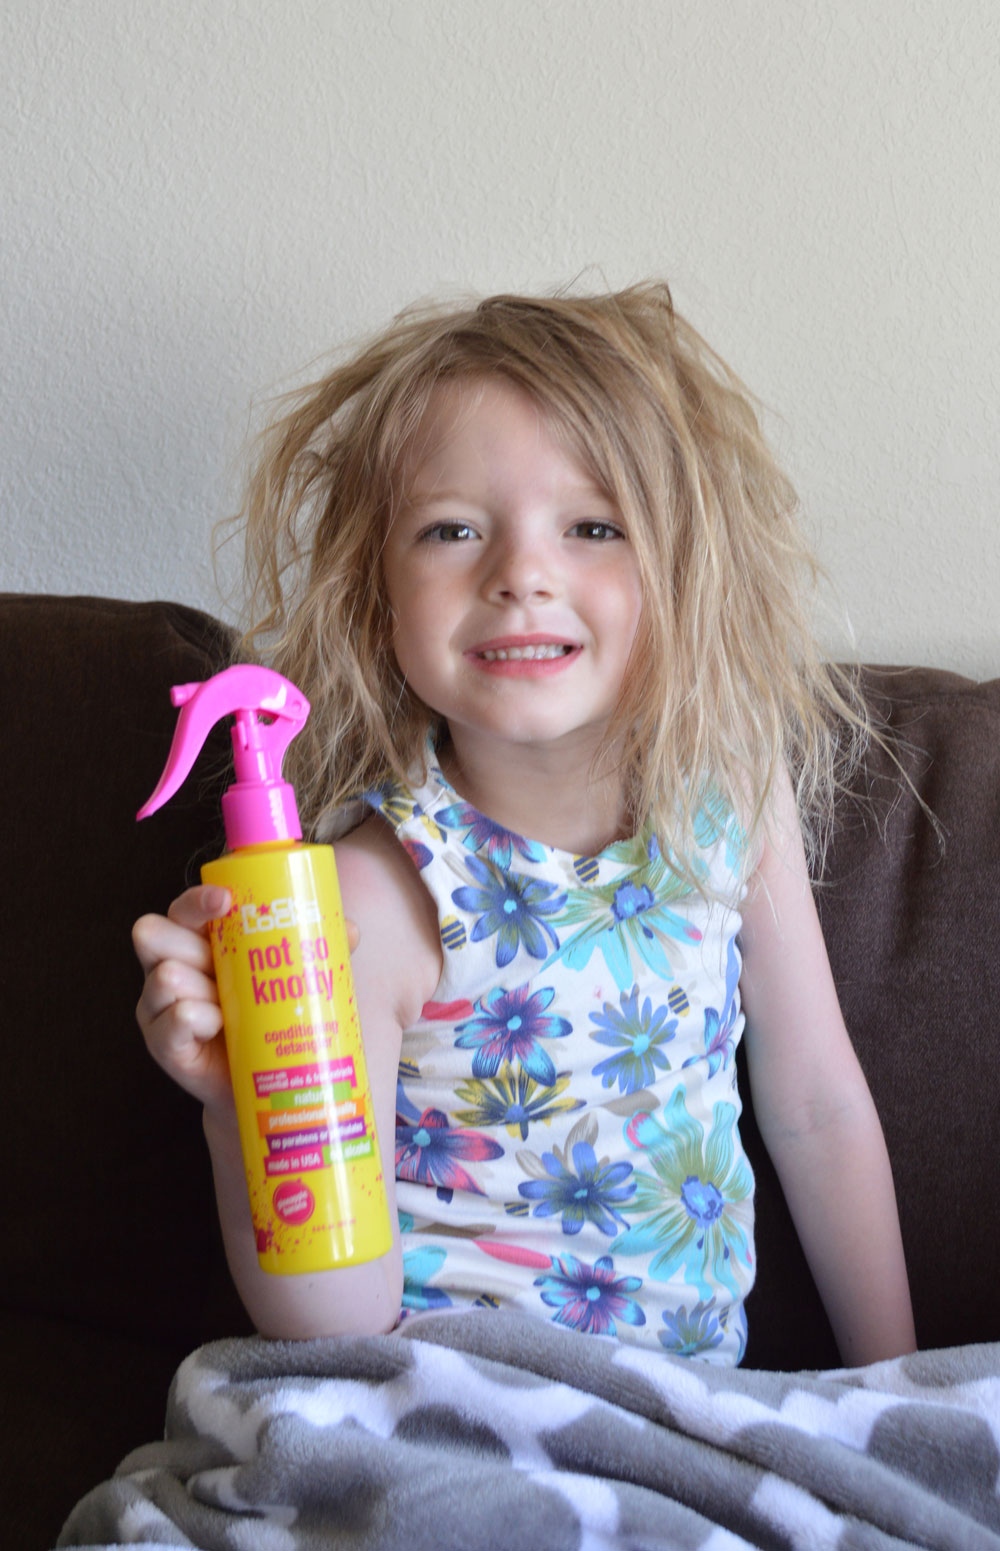 Rock the locks helps detangle kids hair - Mommy Scene